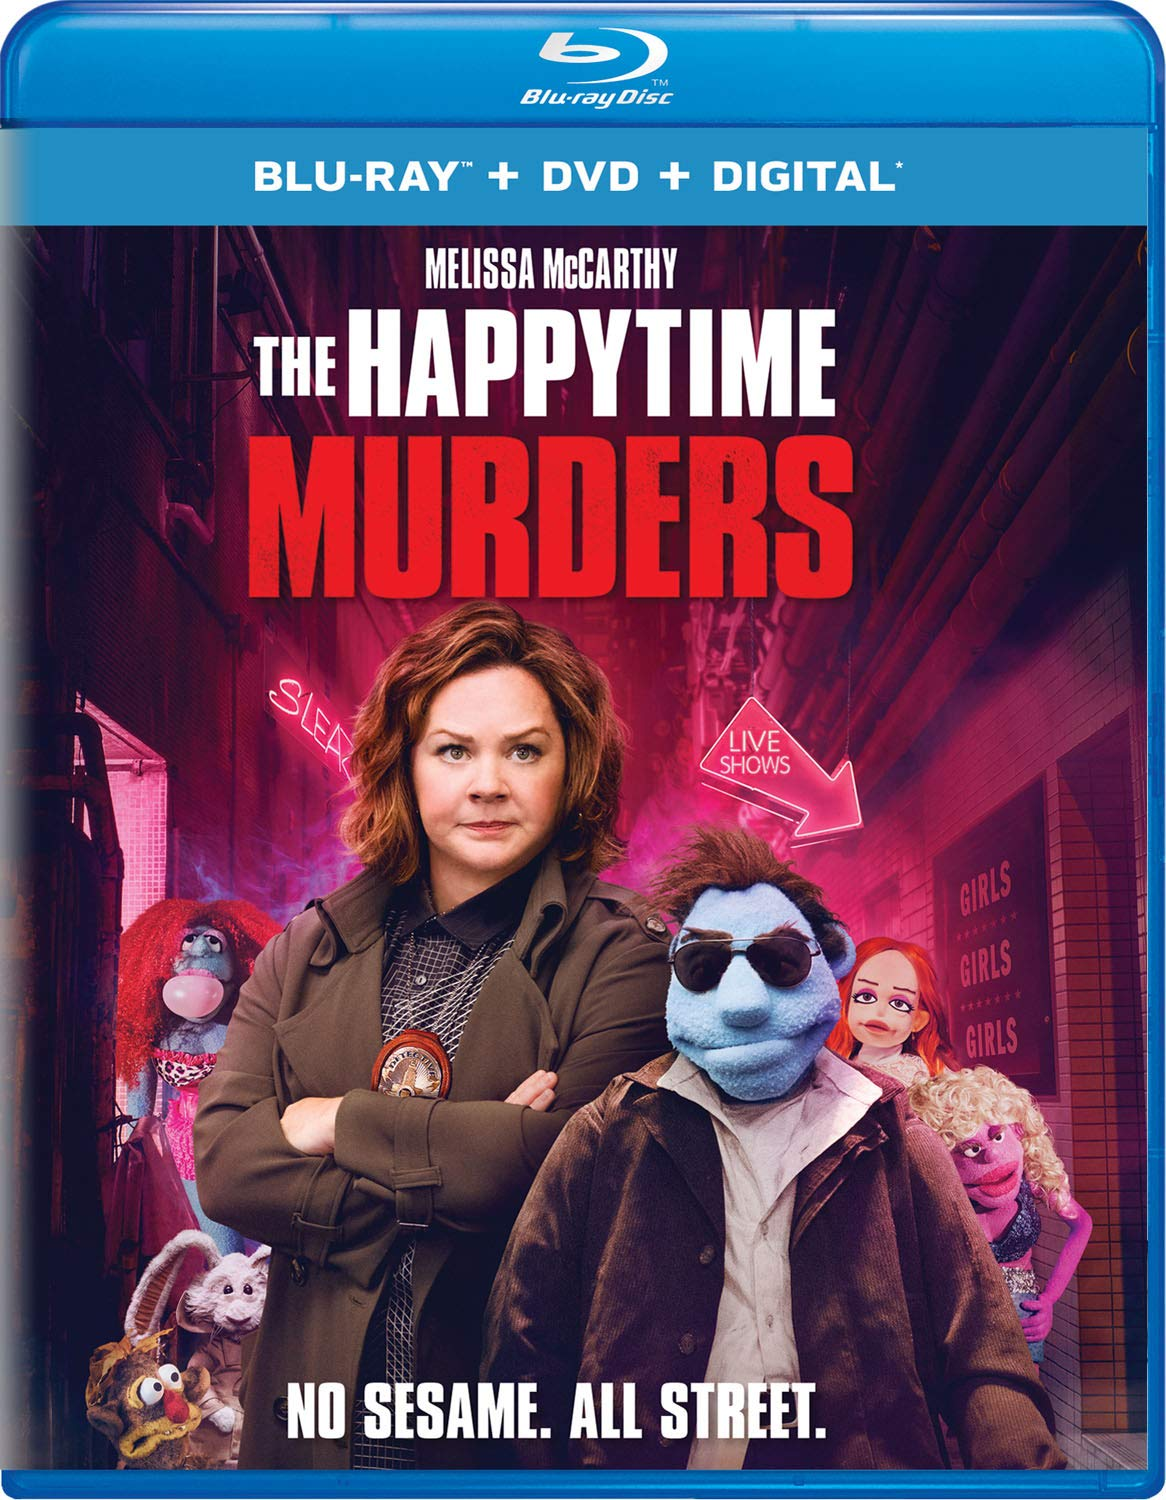 Blu-ray : The Happytime Murders (With DVD, 2 Pack, Digital Copy)